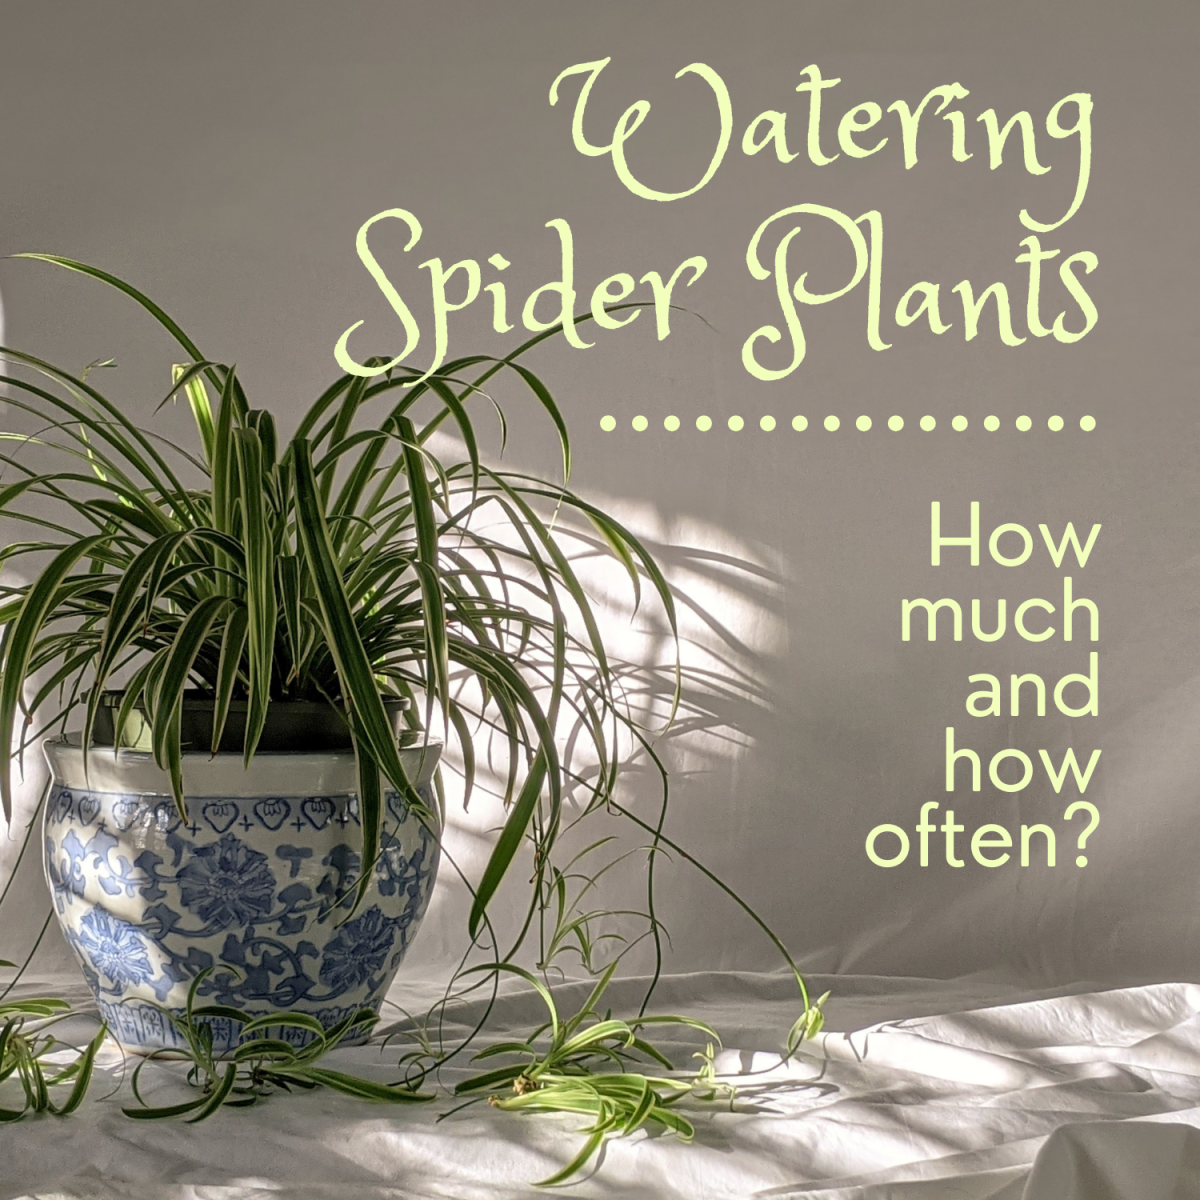 Learn how to water a spider plant and signs of over- and under-watering.